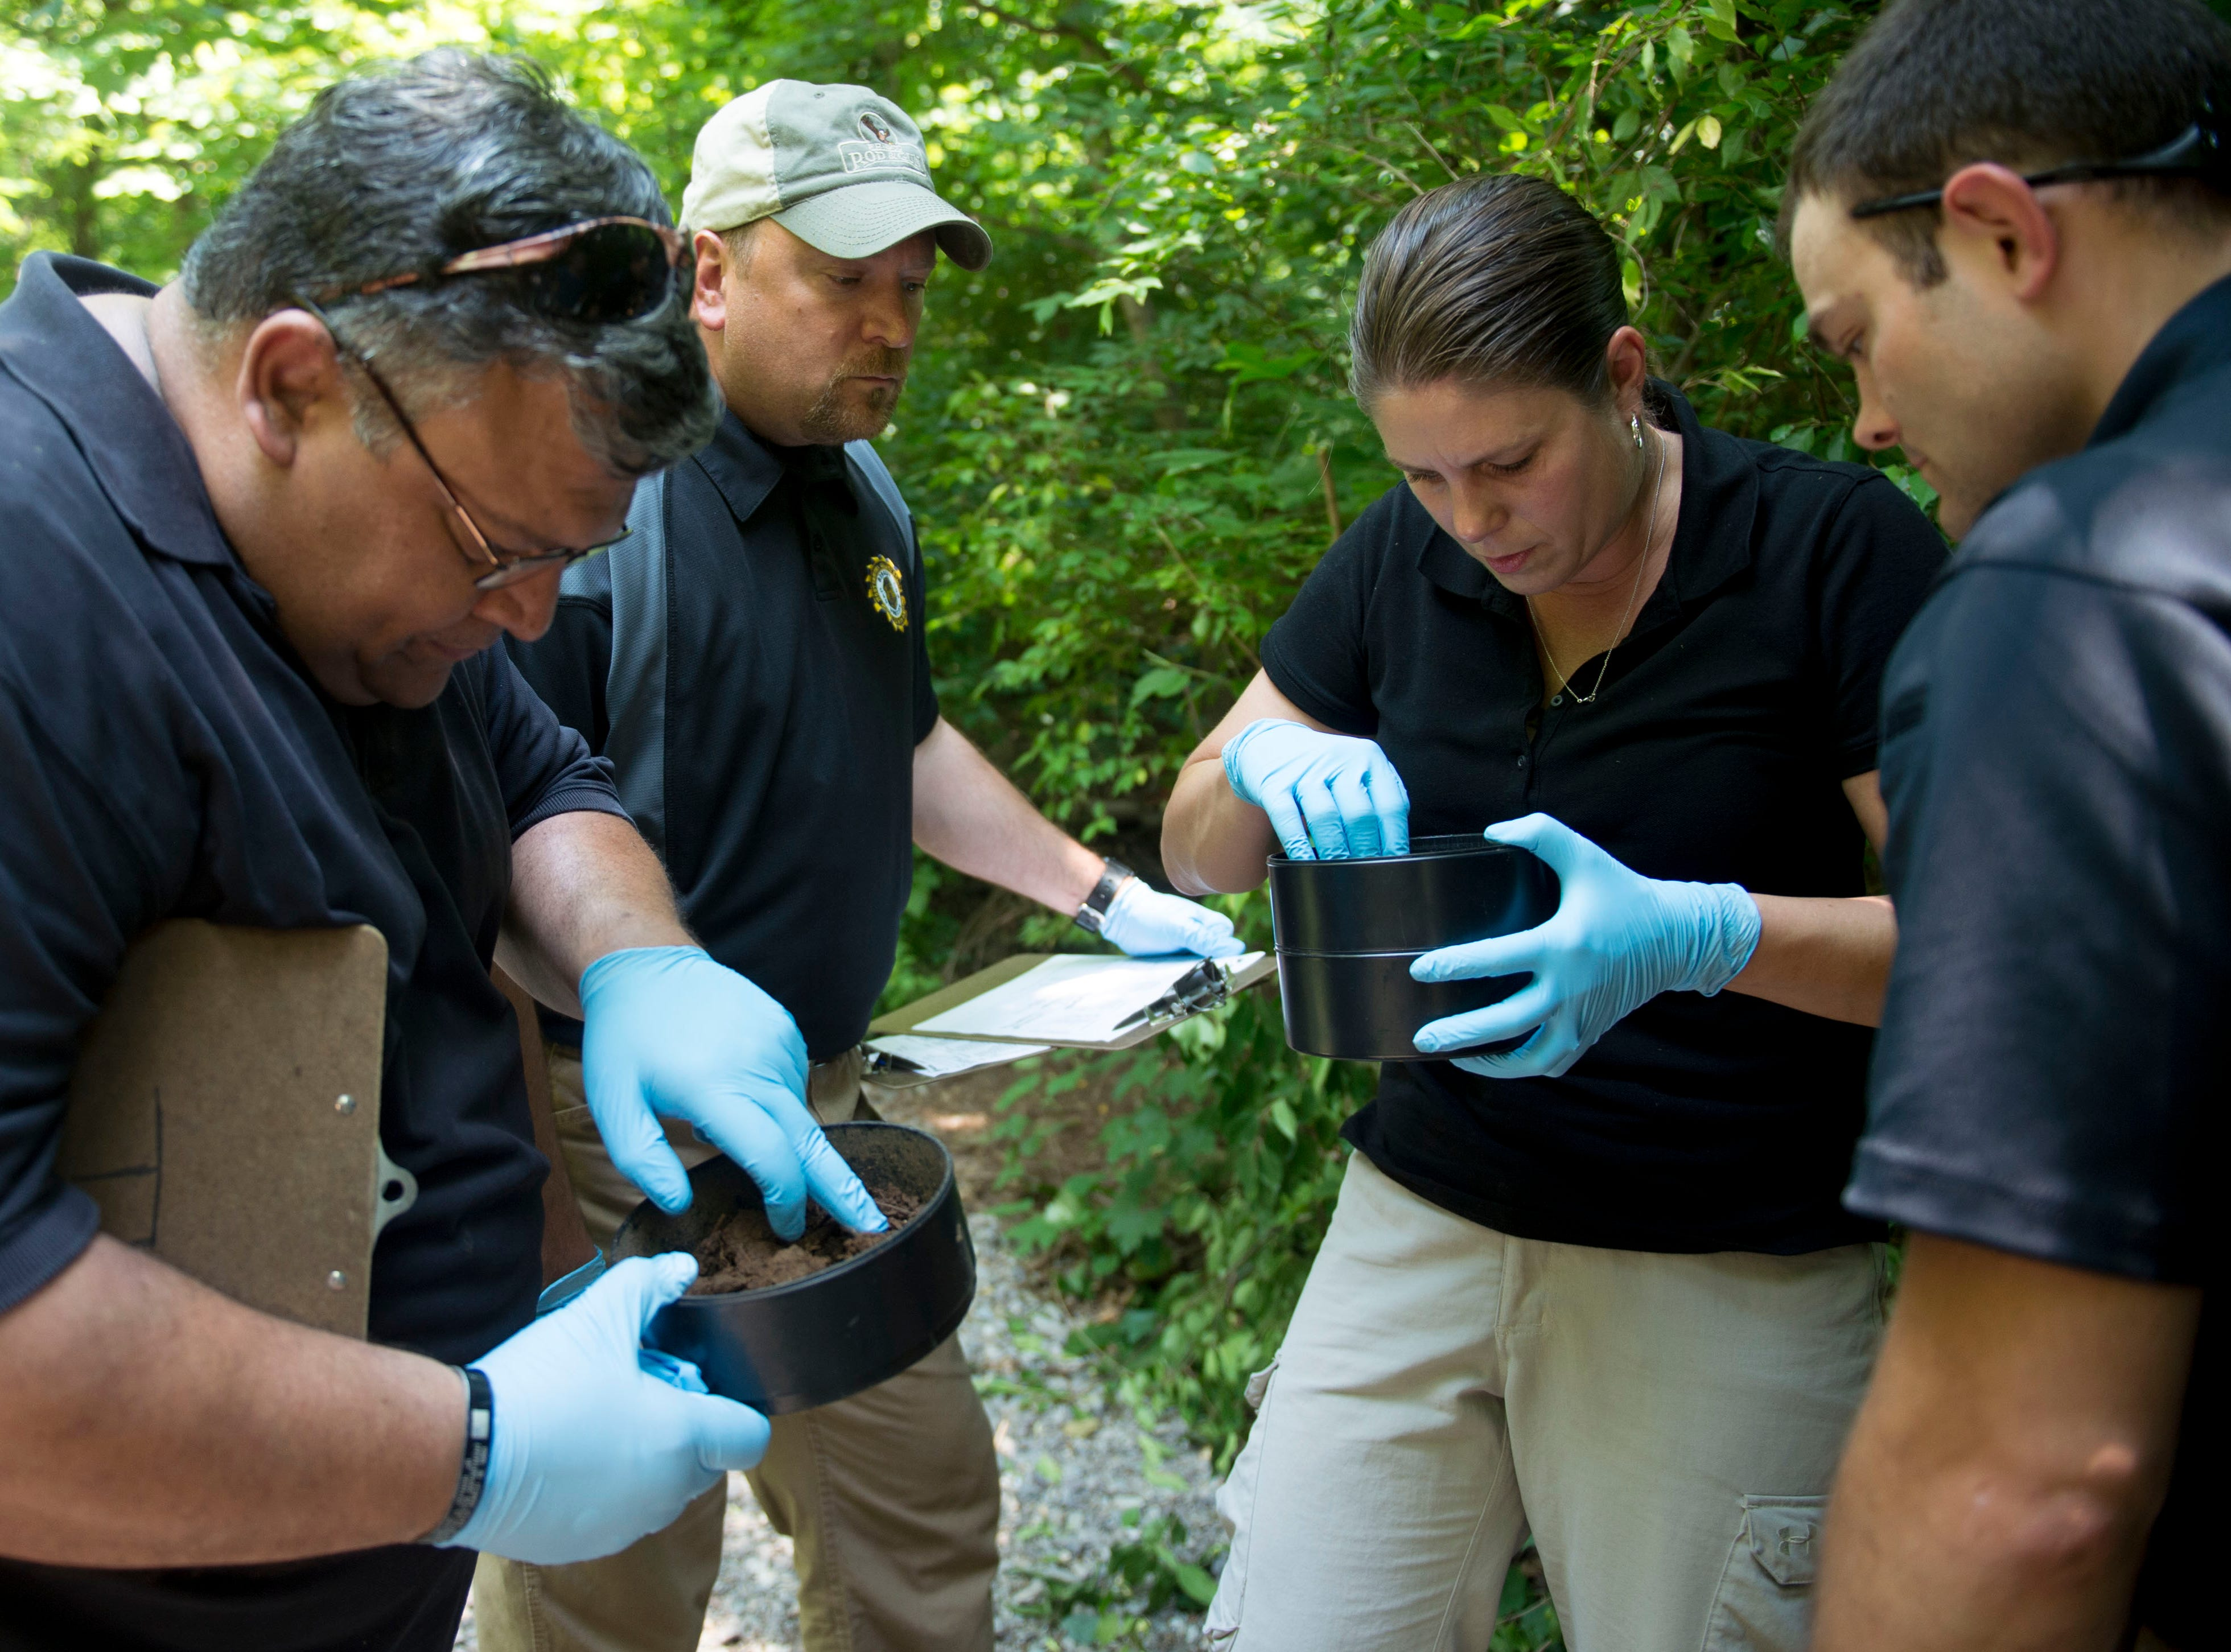 From left,  Luis Colon of Virginia's Portsmouth Police Department , Brian Stafford of Maryland's Montgomery County Police Department, and Nicole Menge of Washington's Kitsap County Sheriffs Department are participating in a weeklong training course at the University of Tennessee's Forensic Anthropology Center. The three, under instruction from Dayson Smith, right, of the Indianapolis Airport Police Department, are searching for casings from the pupal stage of flies that are found near a decomposing body.